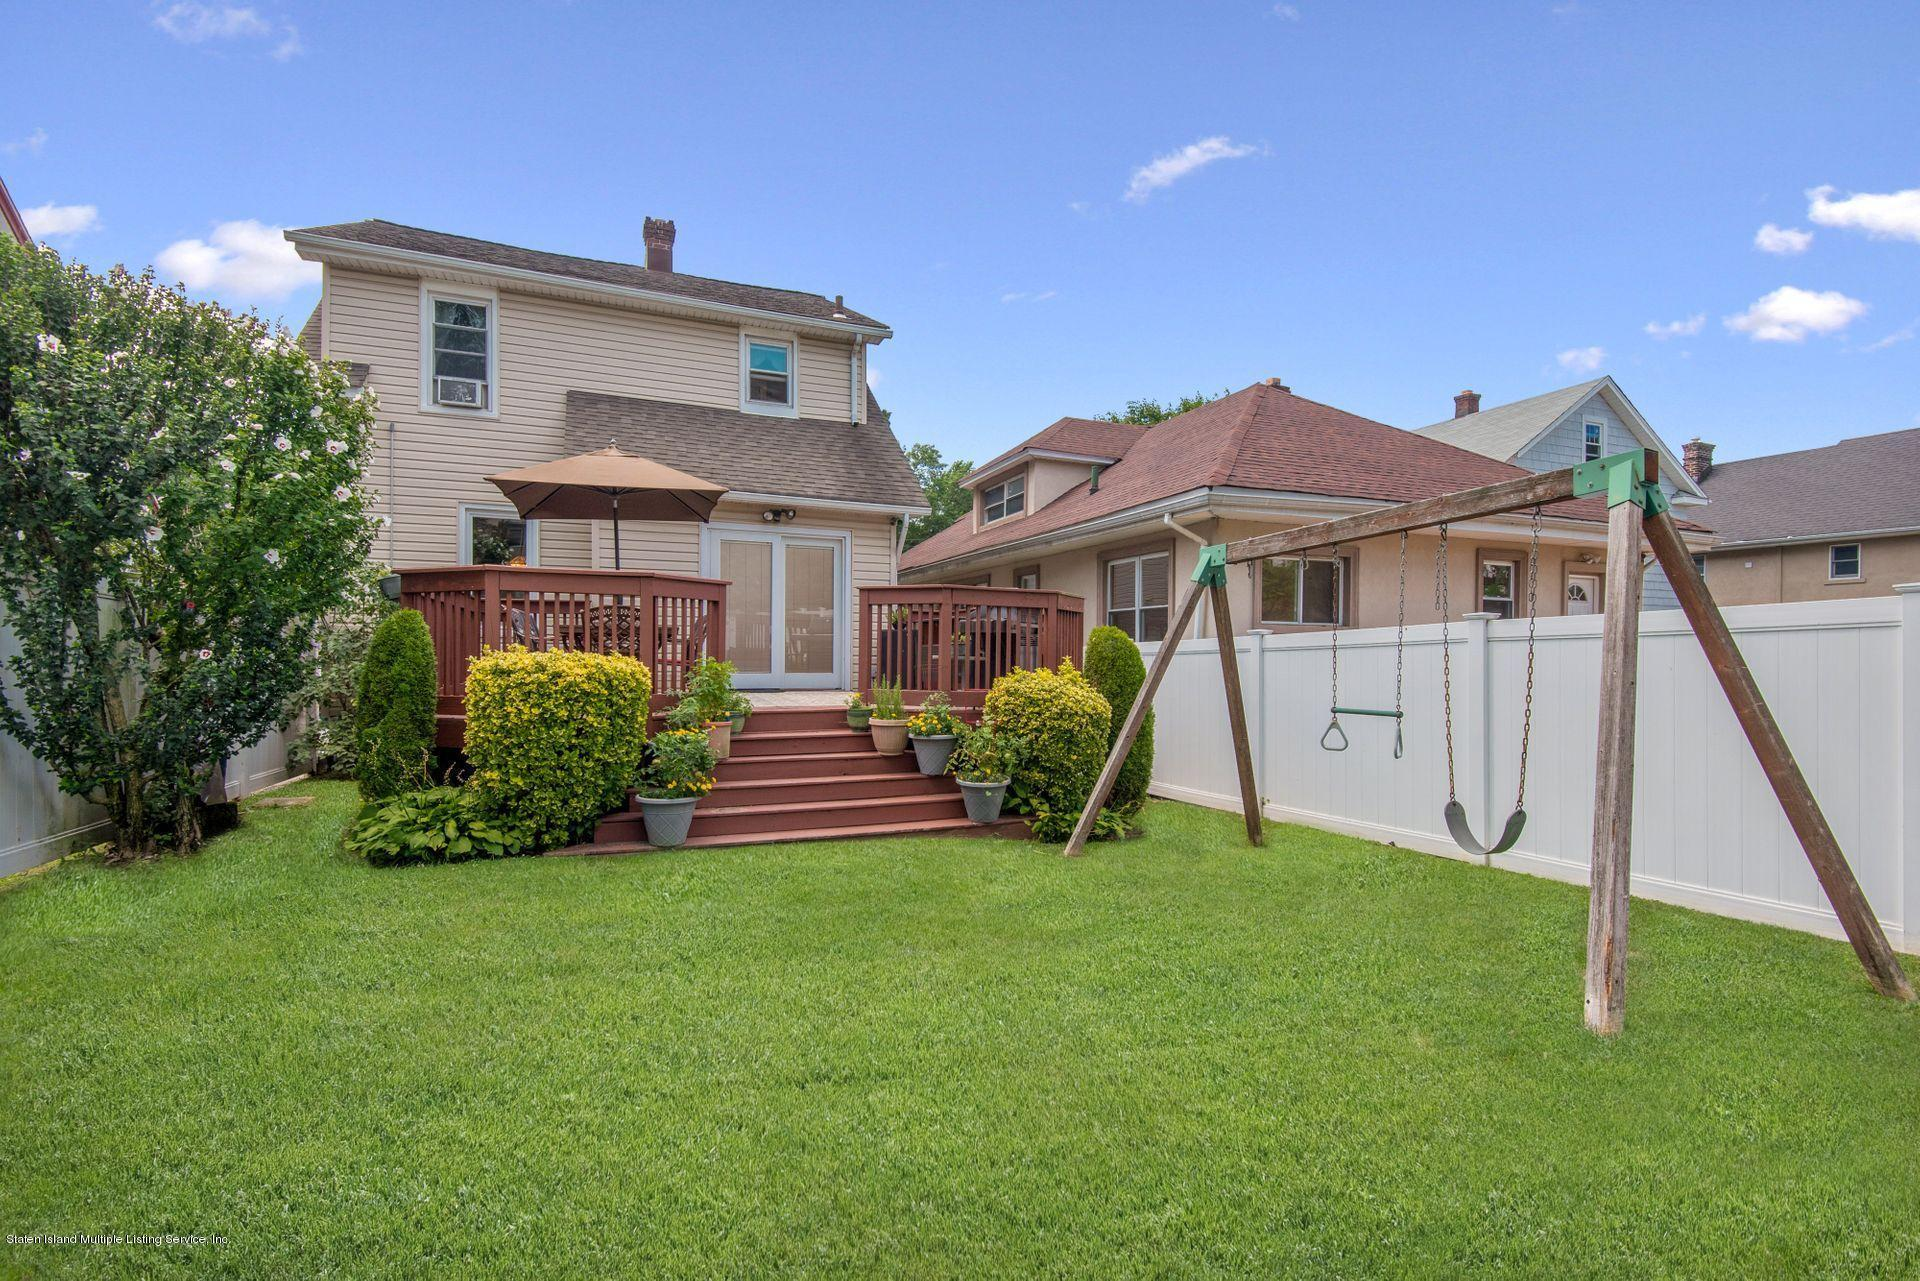 Single Family - Detached 175 Mountainview Avenue  Staten Island, NY 10314, MLS-1132164-20